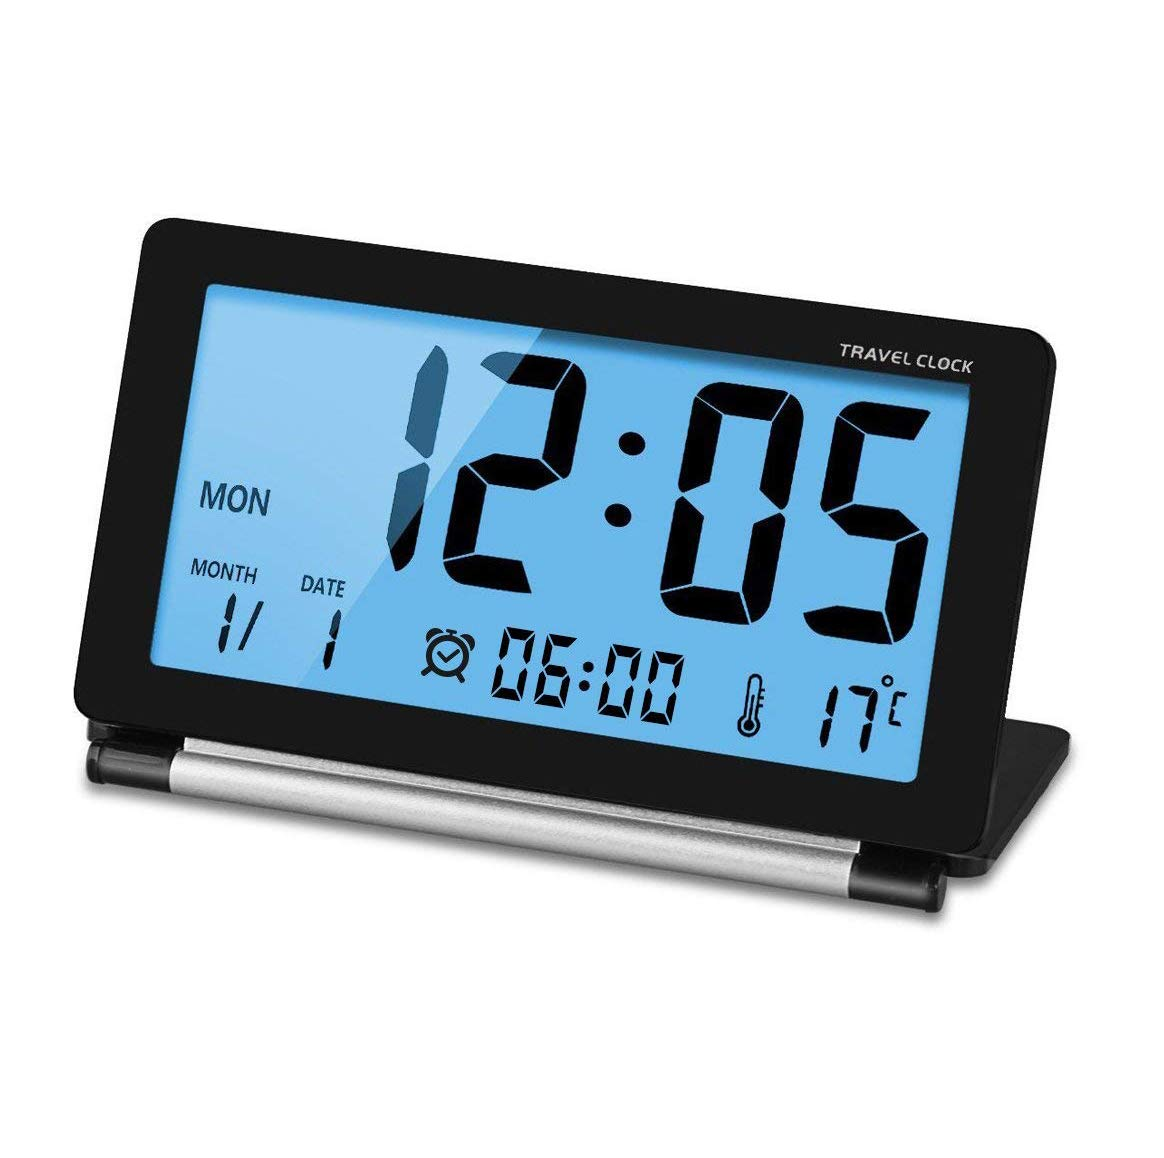 Manfore Smart Portable Travel Clock Large LCD Screen Battery Operated Desktop Table Bedside Small Clock with Calendar Temperature Snooze Night Light Function for Home Office Travel Use (Black)